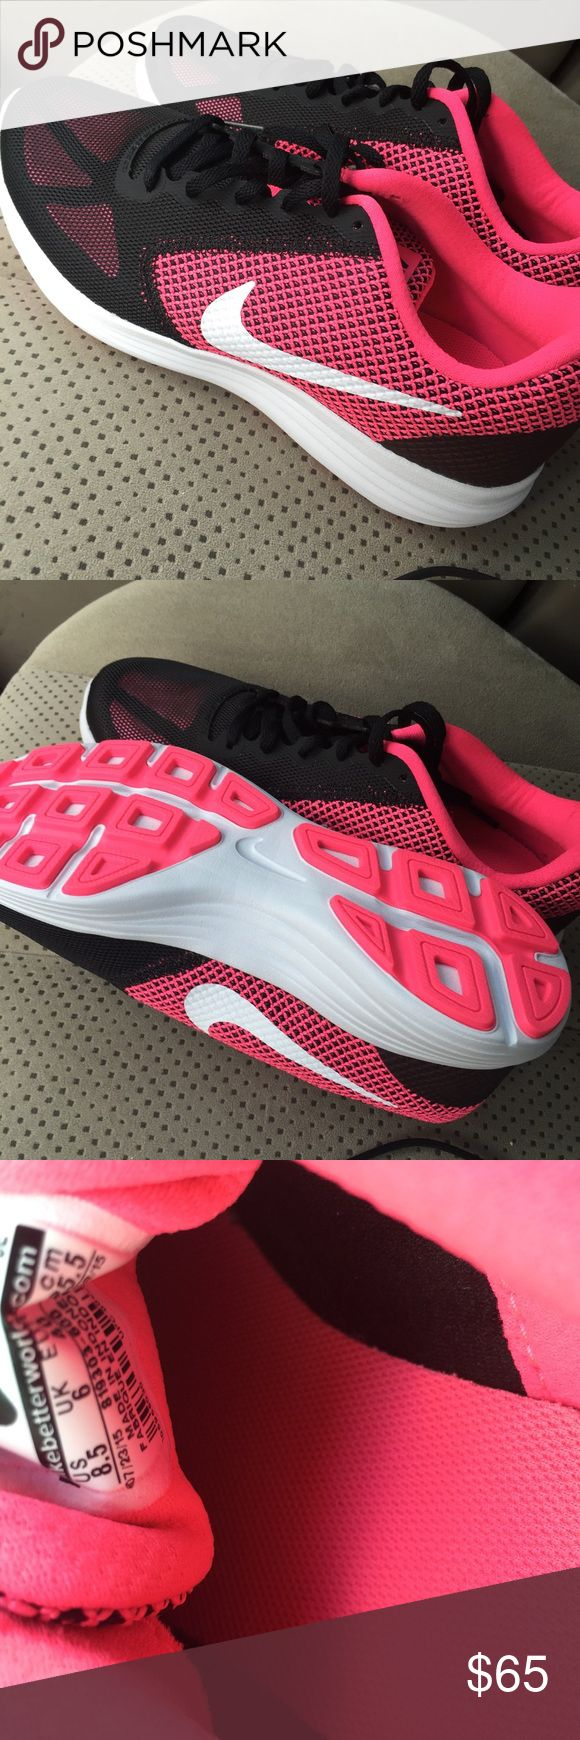 Women's Nike Shoes size 8.5 NEW! Brand new never been worn Nike women's shoes size 8.5 Nike Shoes Athletic Shoes